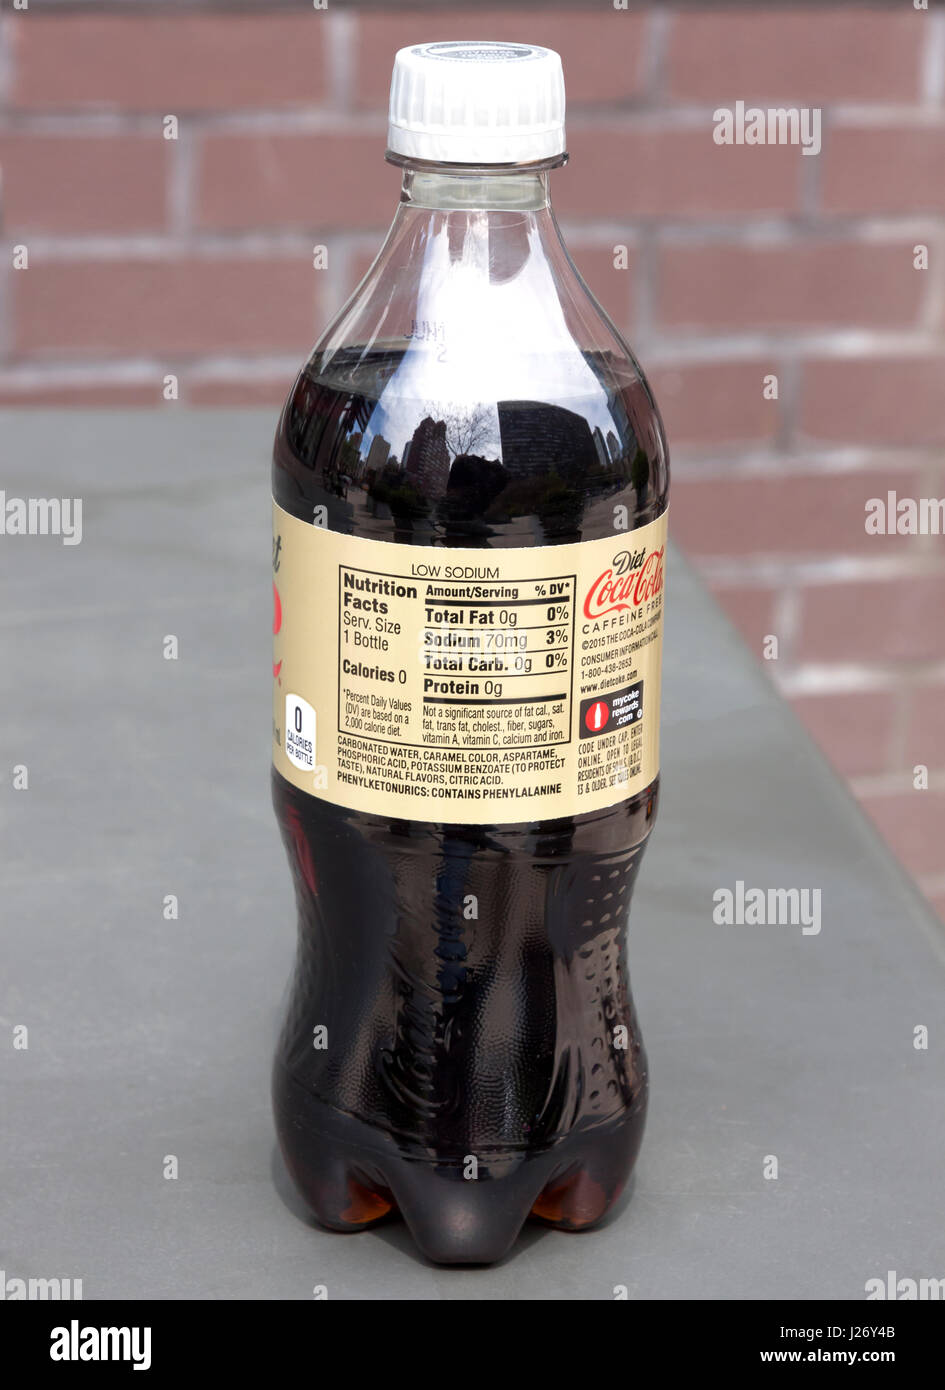 Diet Coke bottle ingredients which contains the controversial phenylalanine and aspartame. - Stock Image